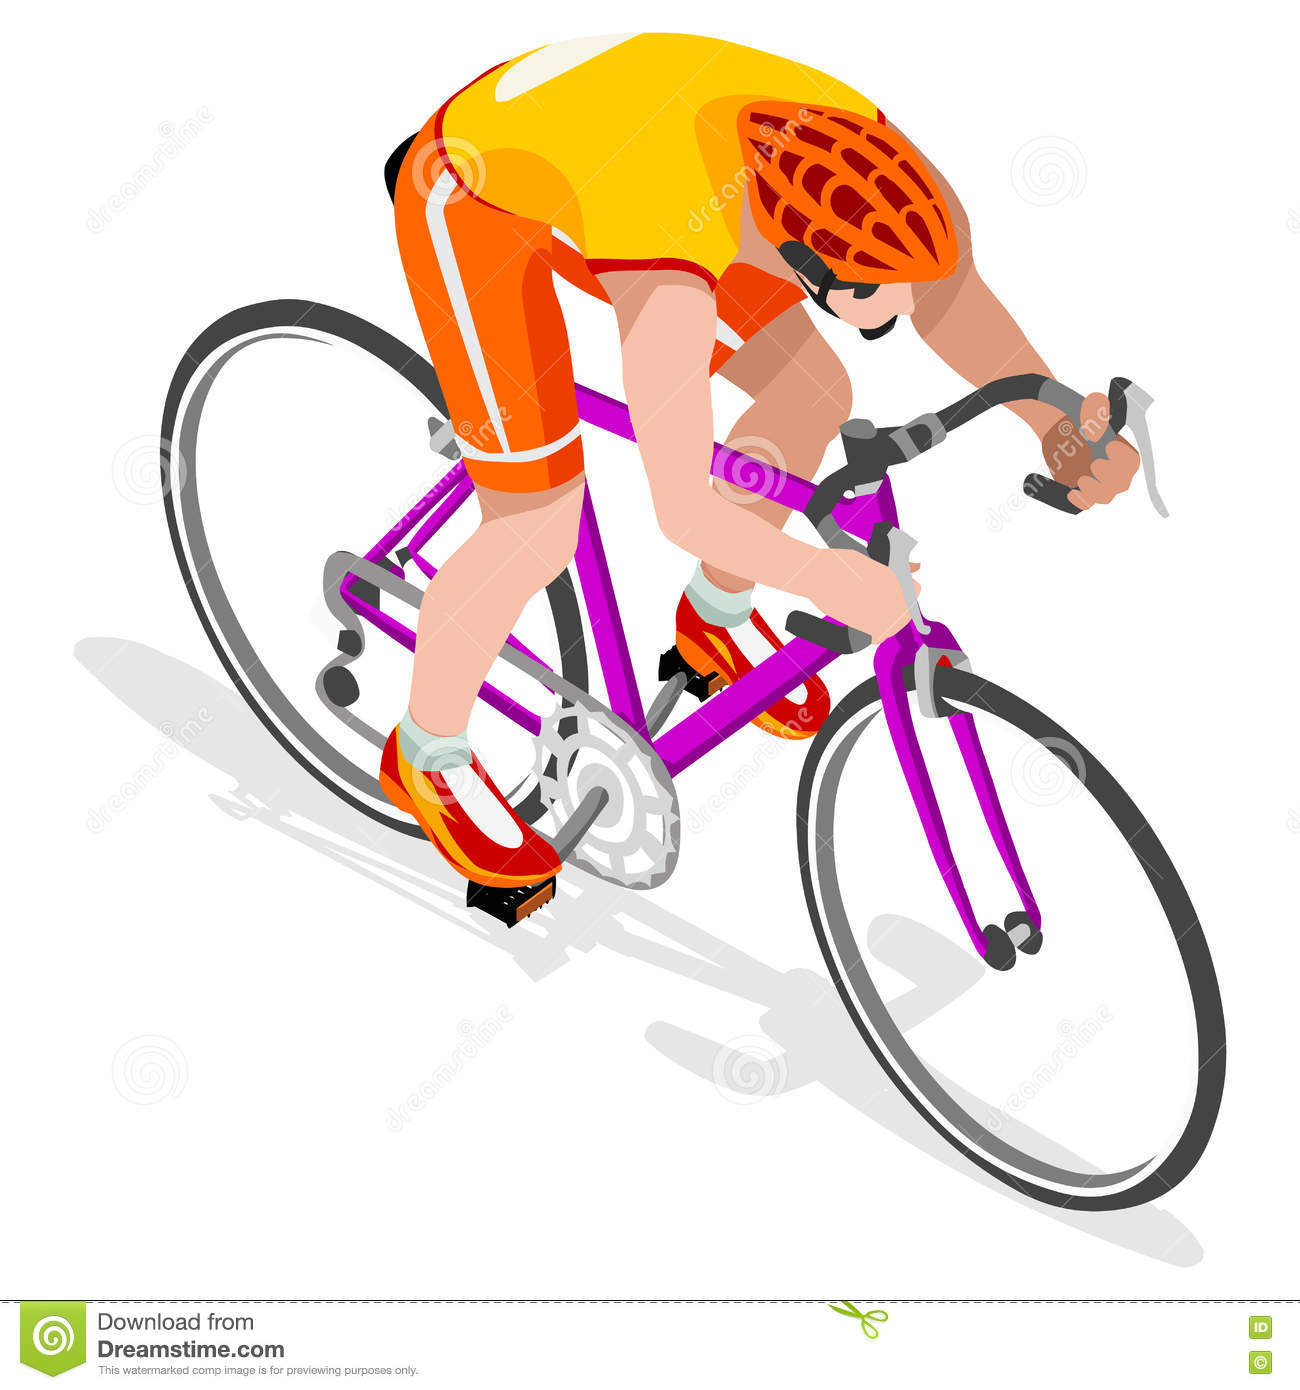 Ensemble de summer games icon d 39 athl te de cycliste de - Cycliste dessin ...